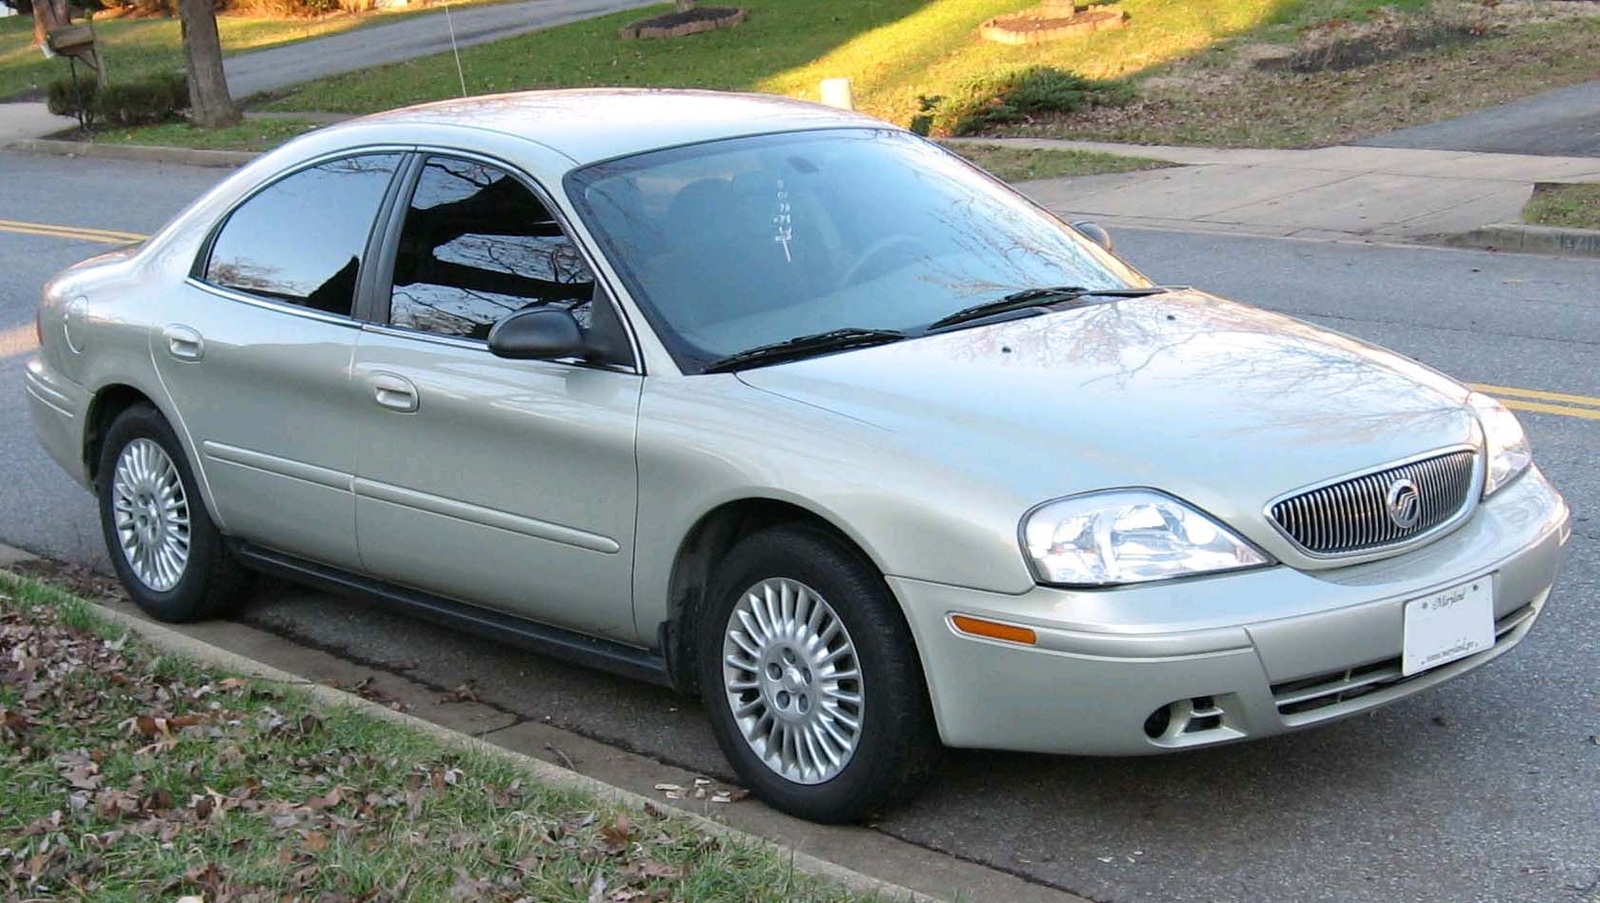 2004 Mercury Sable picture